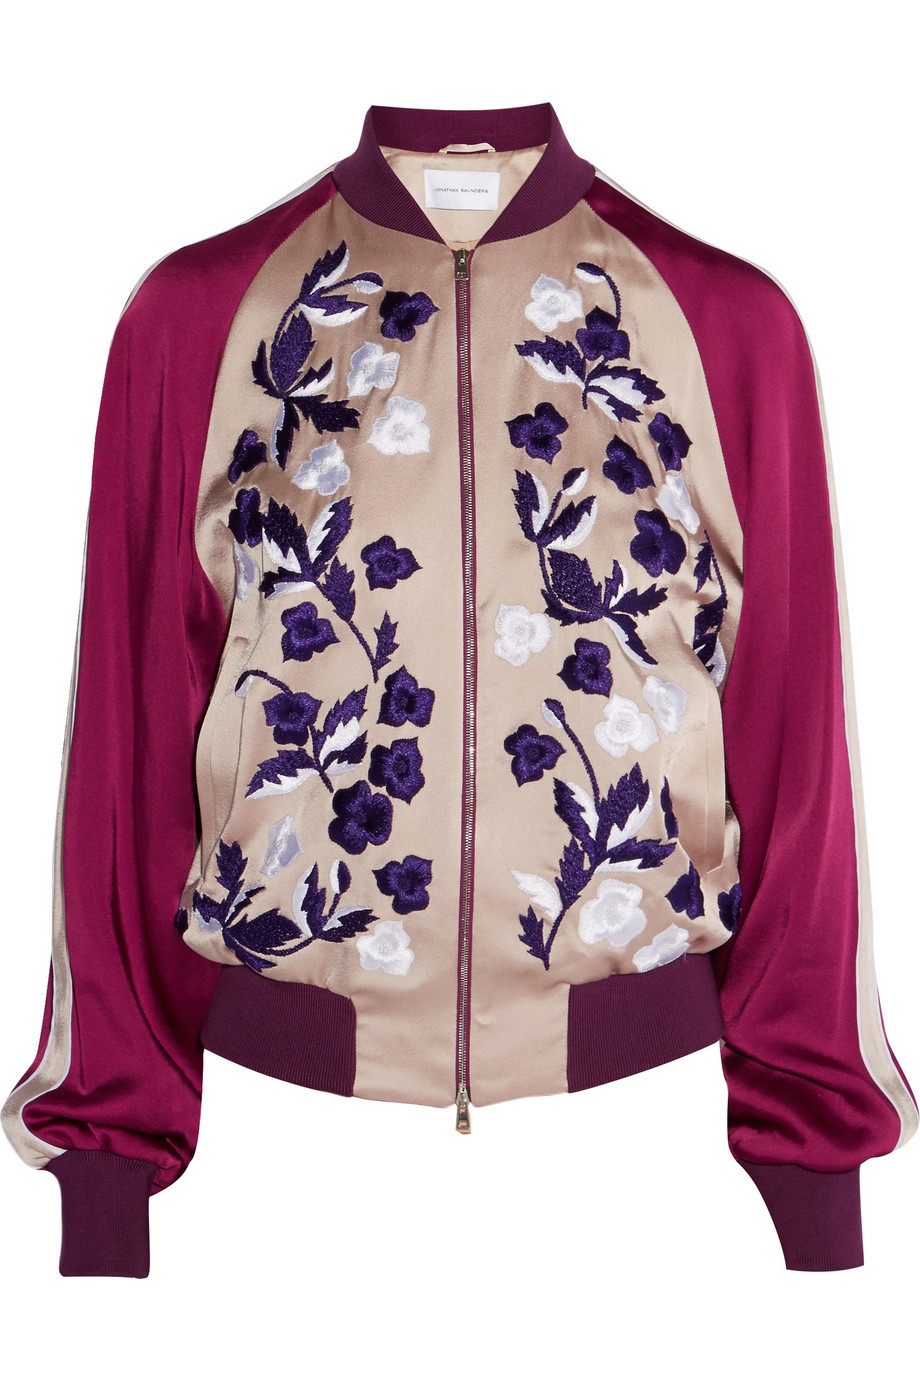 4d7251be1 Jonathan Saunders Cecily Floral-Embroidered Satin Bomber Jacket in ...